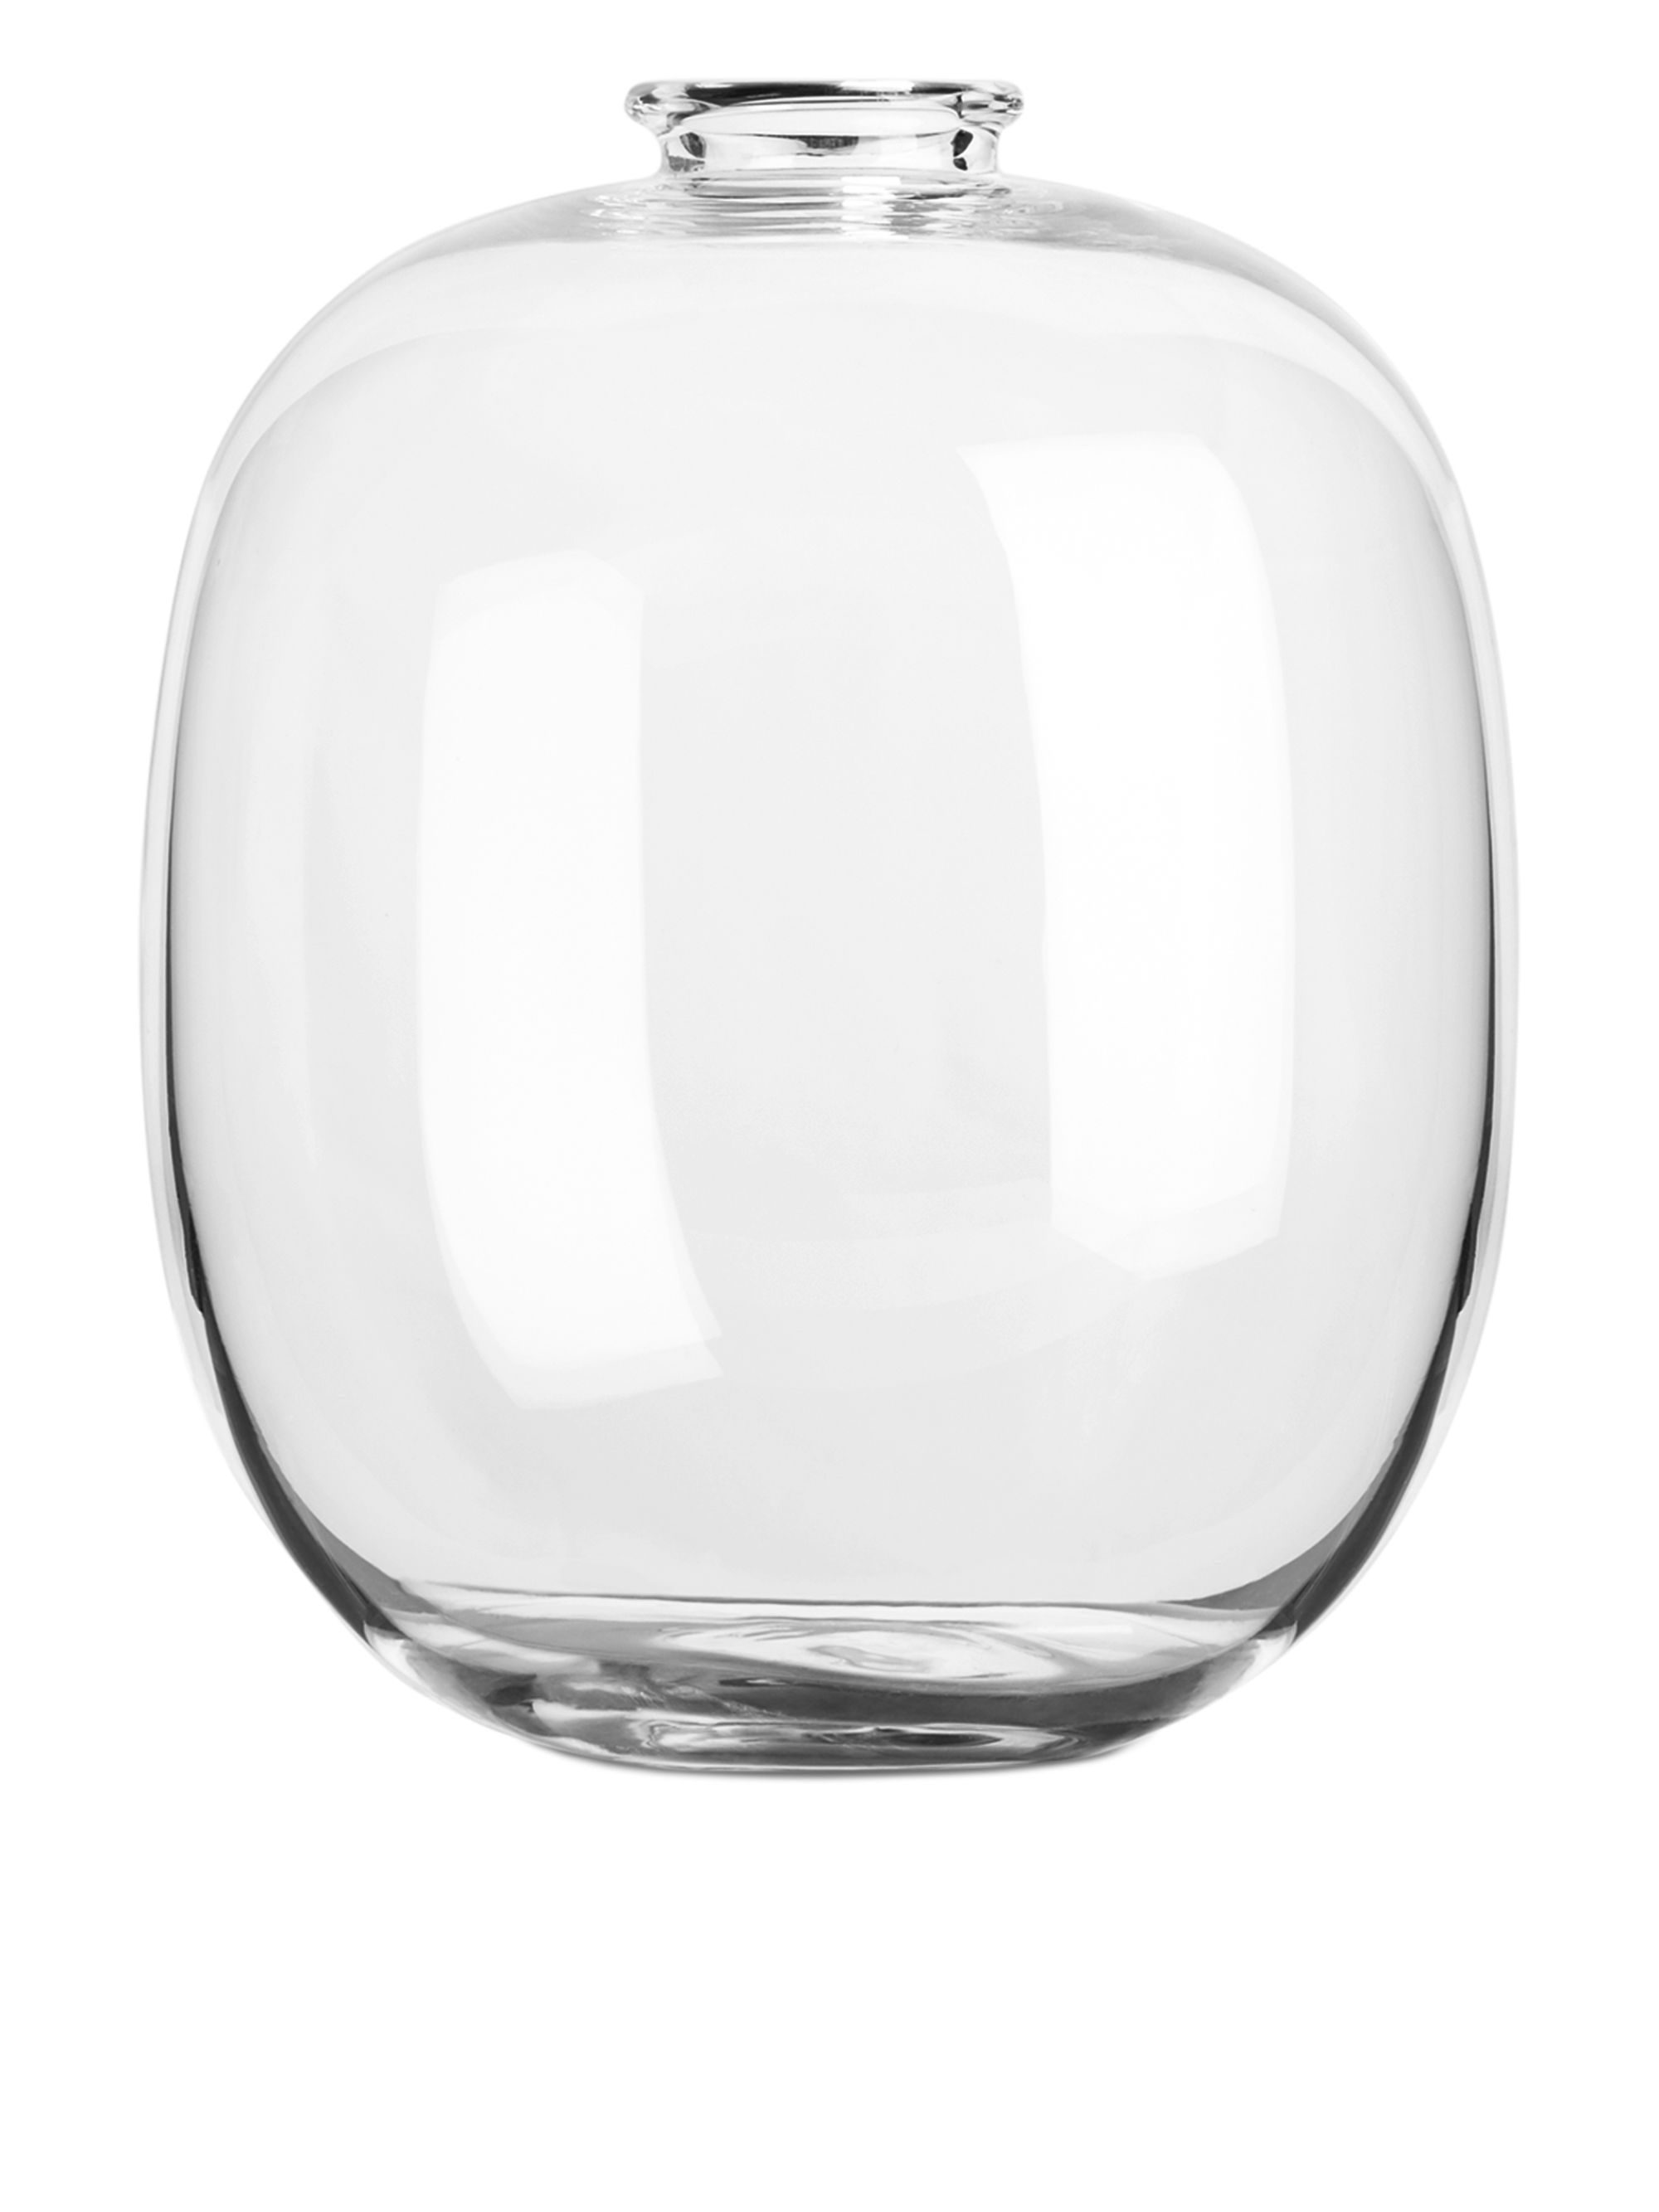 570086 724  Large Rounded Vase With An Elongated Shape, This